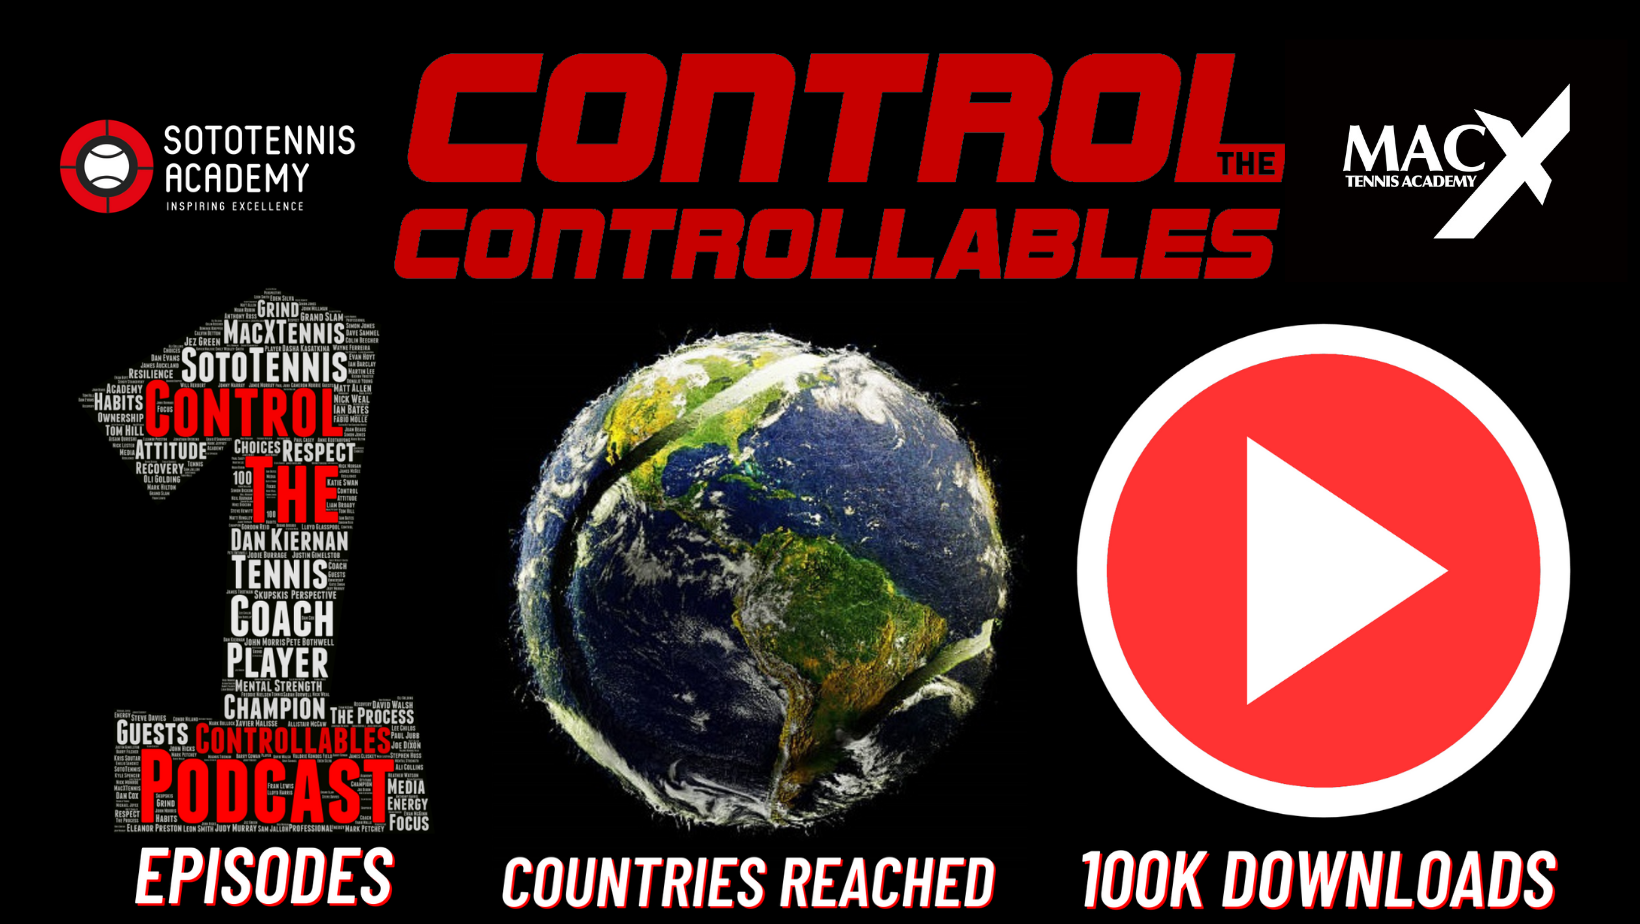 100th Episode, 100 Countries Reached, 100K Downloads for Control the Controllables Podcast